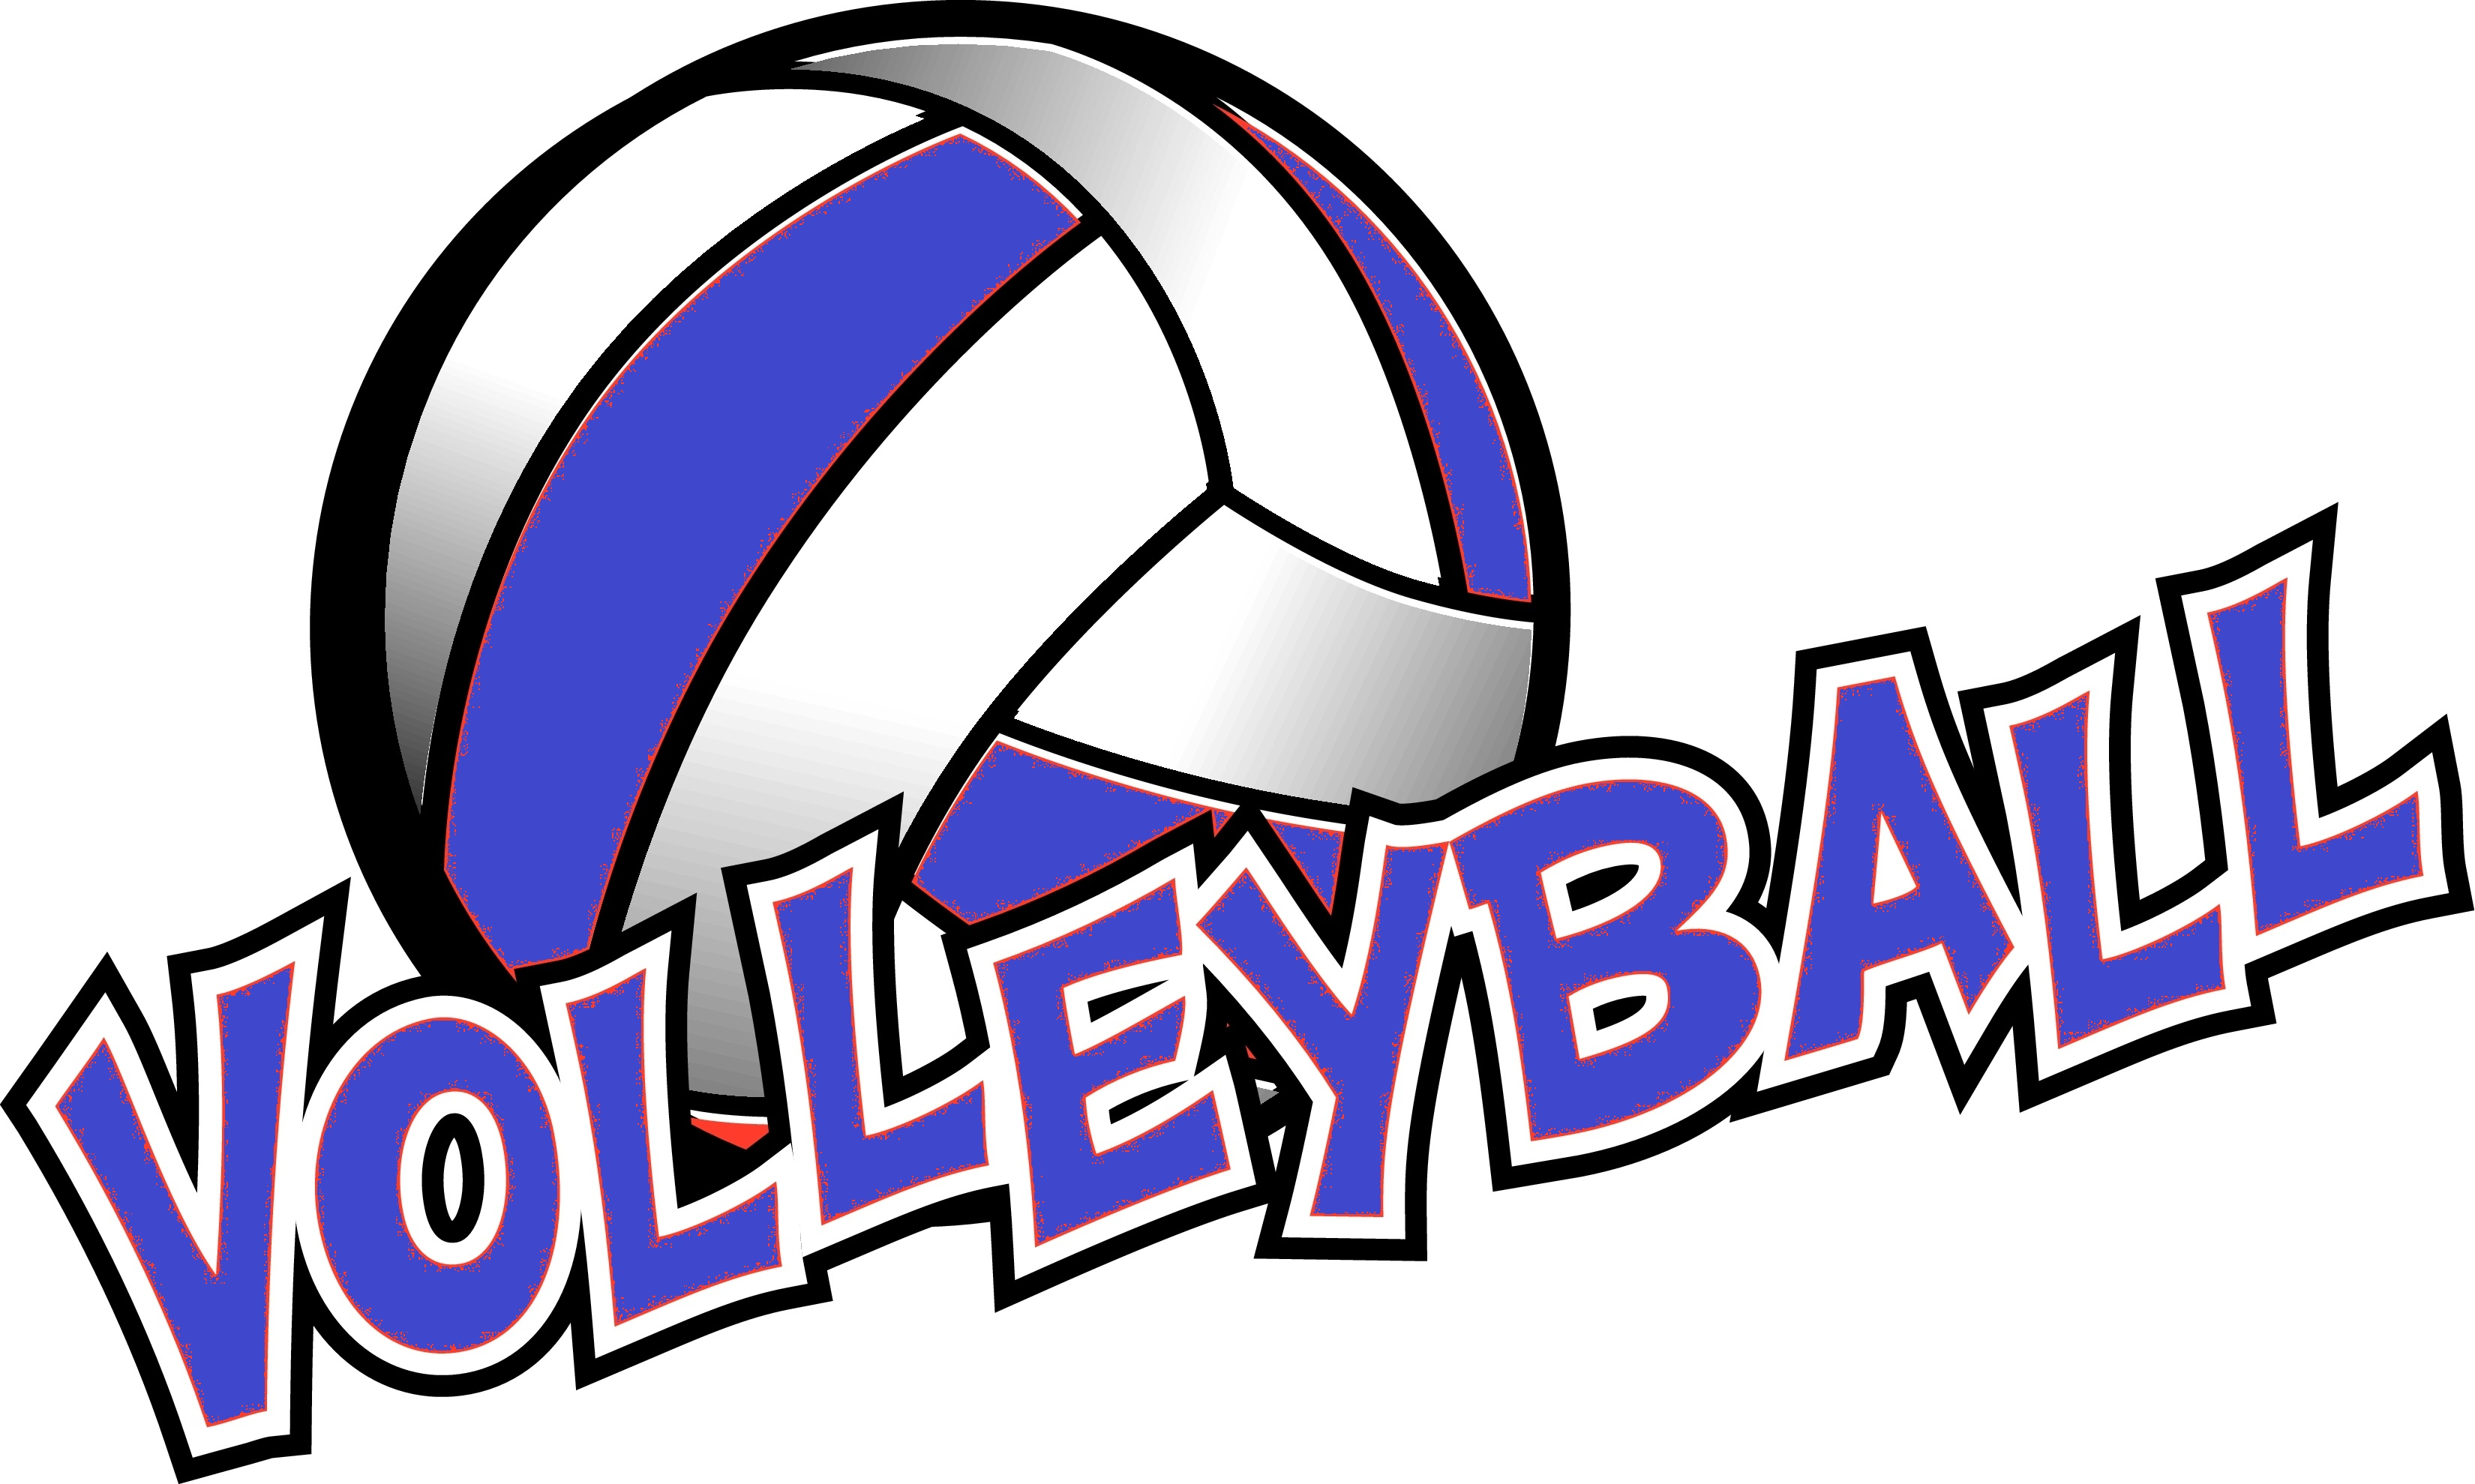 3300x1979 Volleyball Clipart Holy Cross